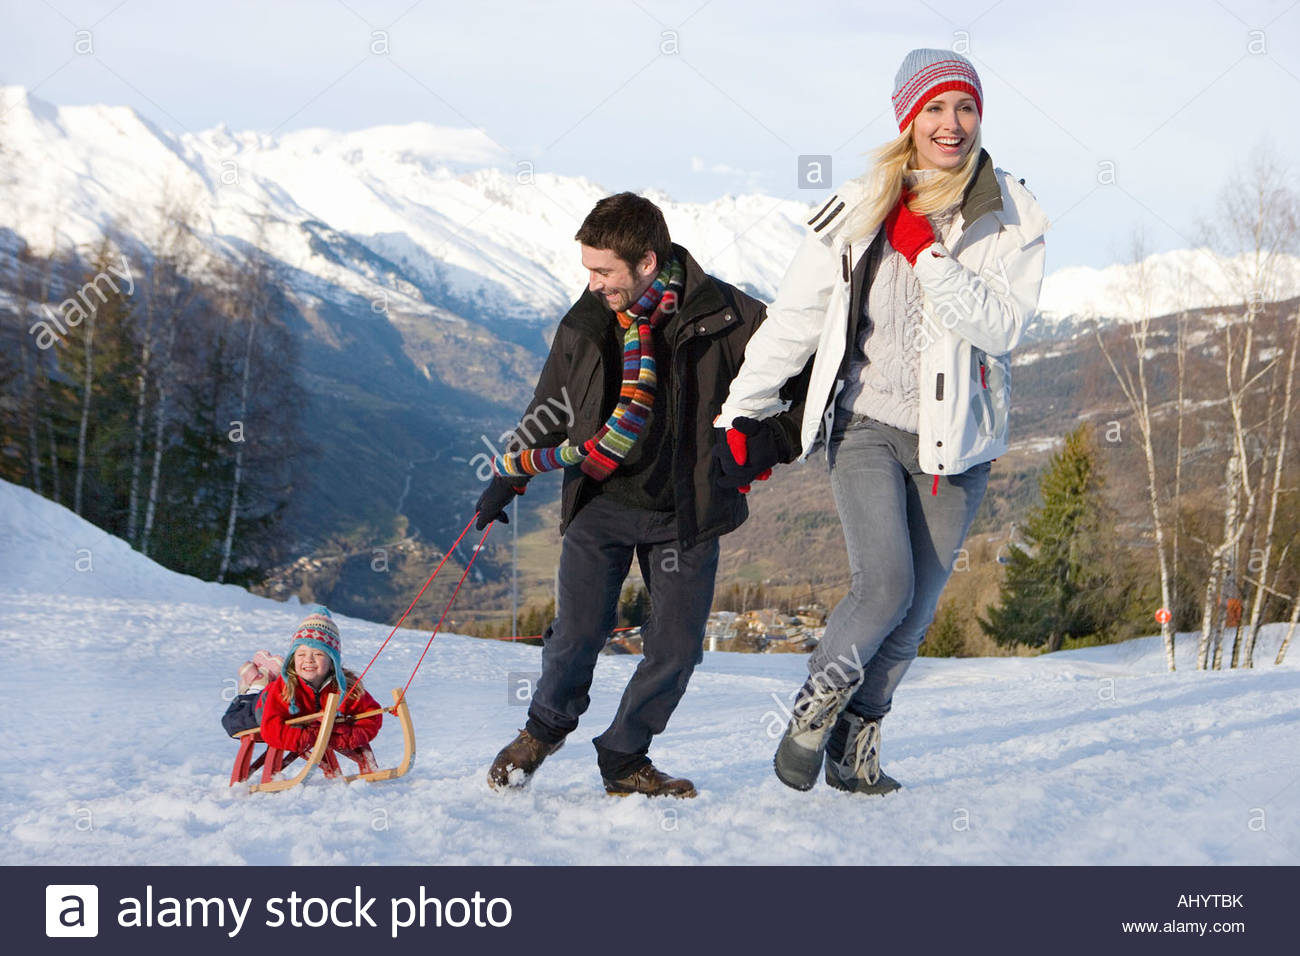 Young couple pulling daughter  on sled in snow field, smiling, mountain range in background - Stock Image